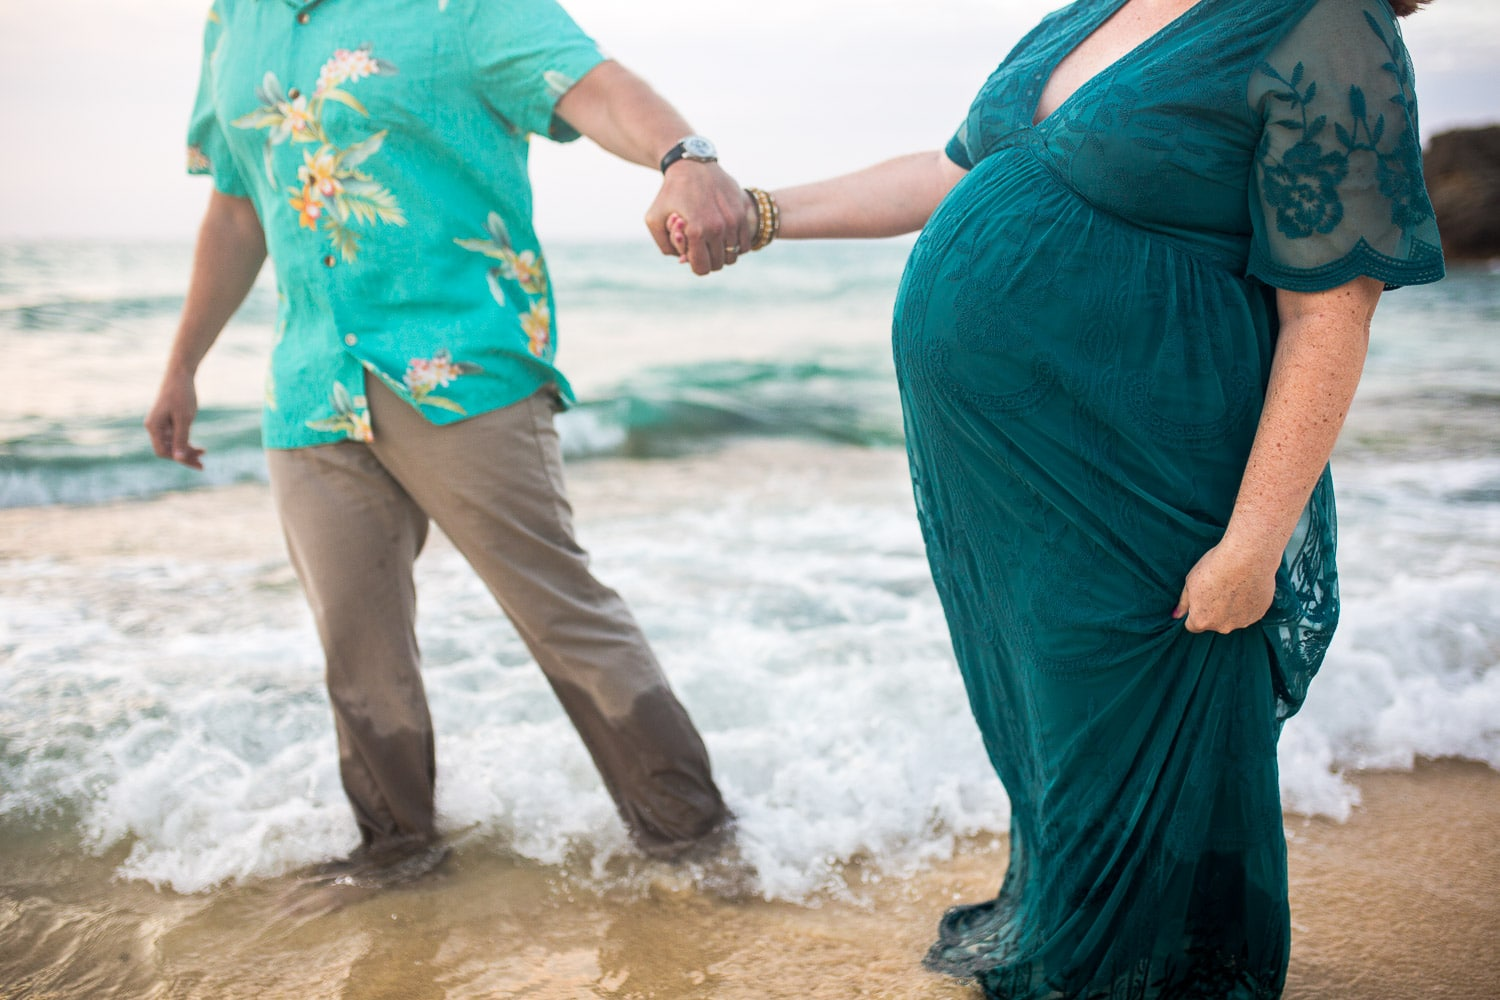 Maternity pregnancy photos on the beach in Okinawa Japan by Alison Bell Photographer.